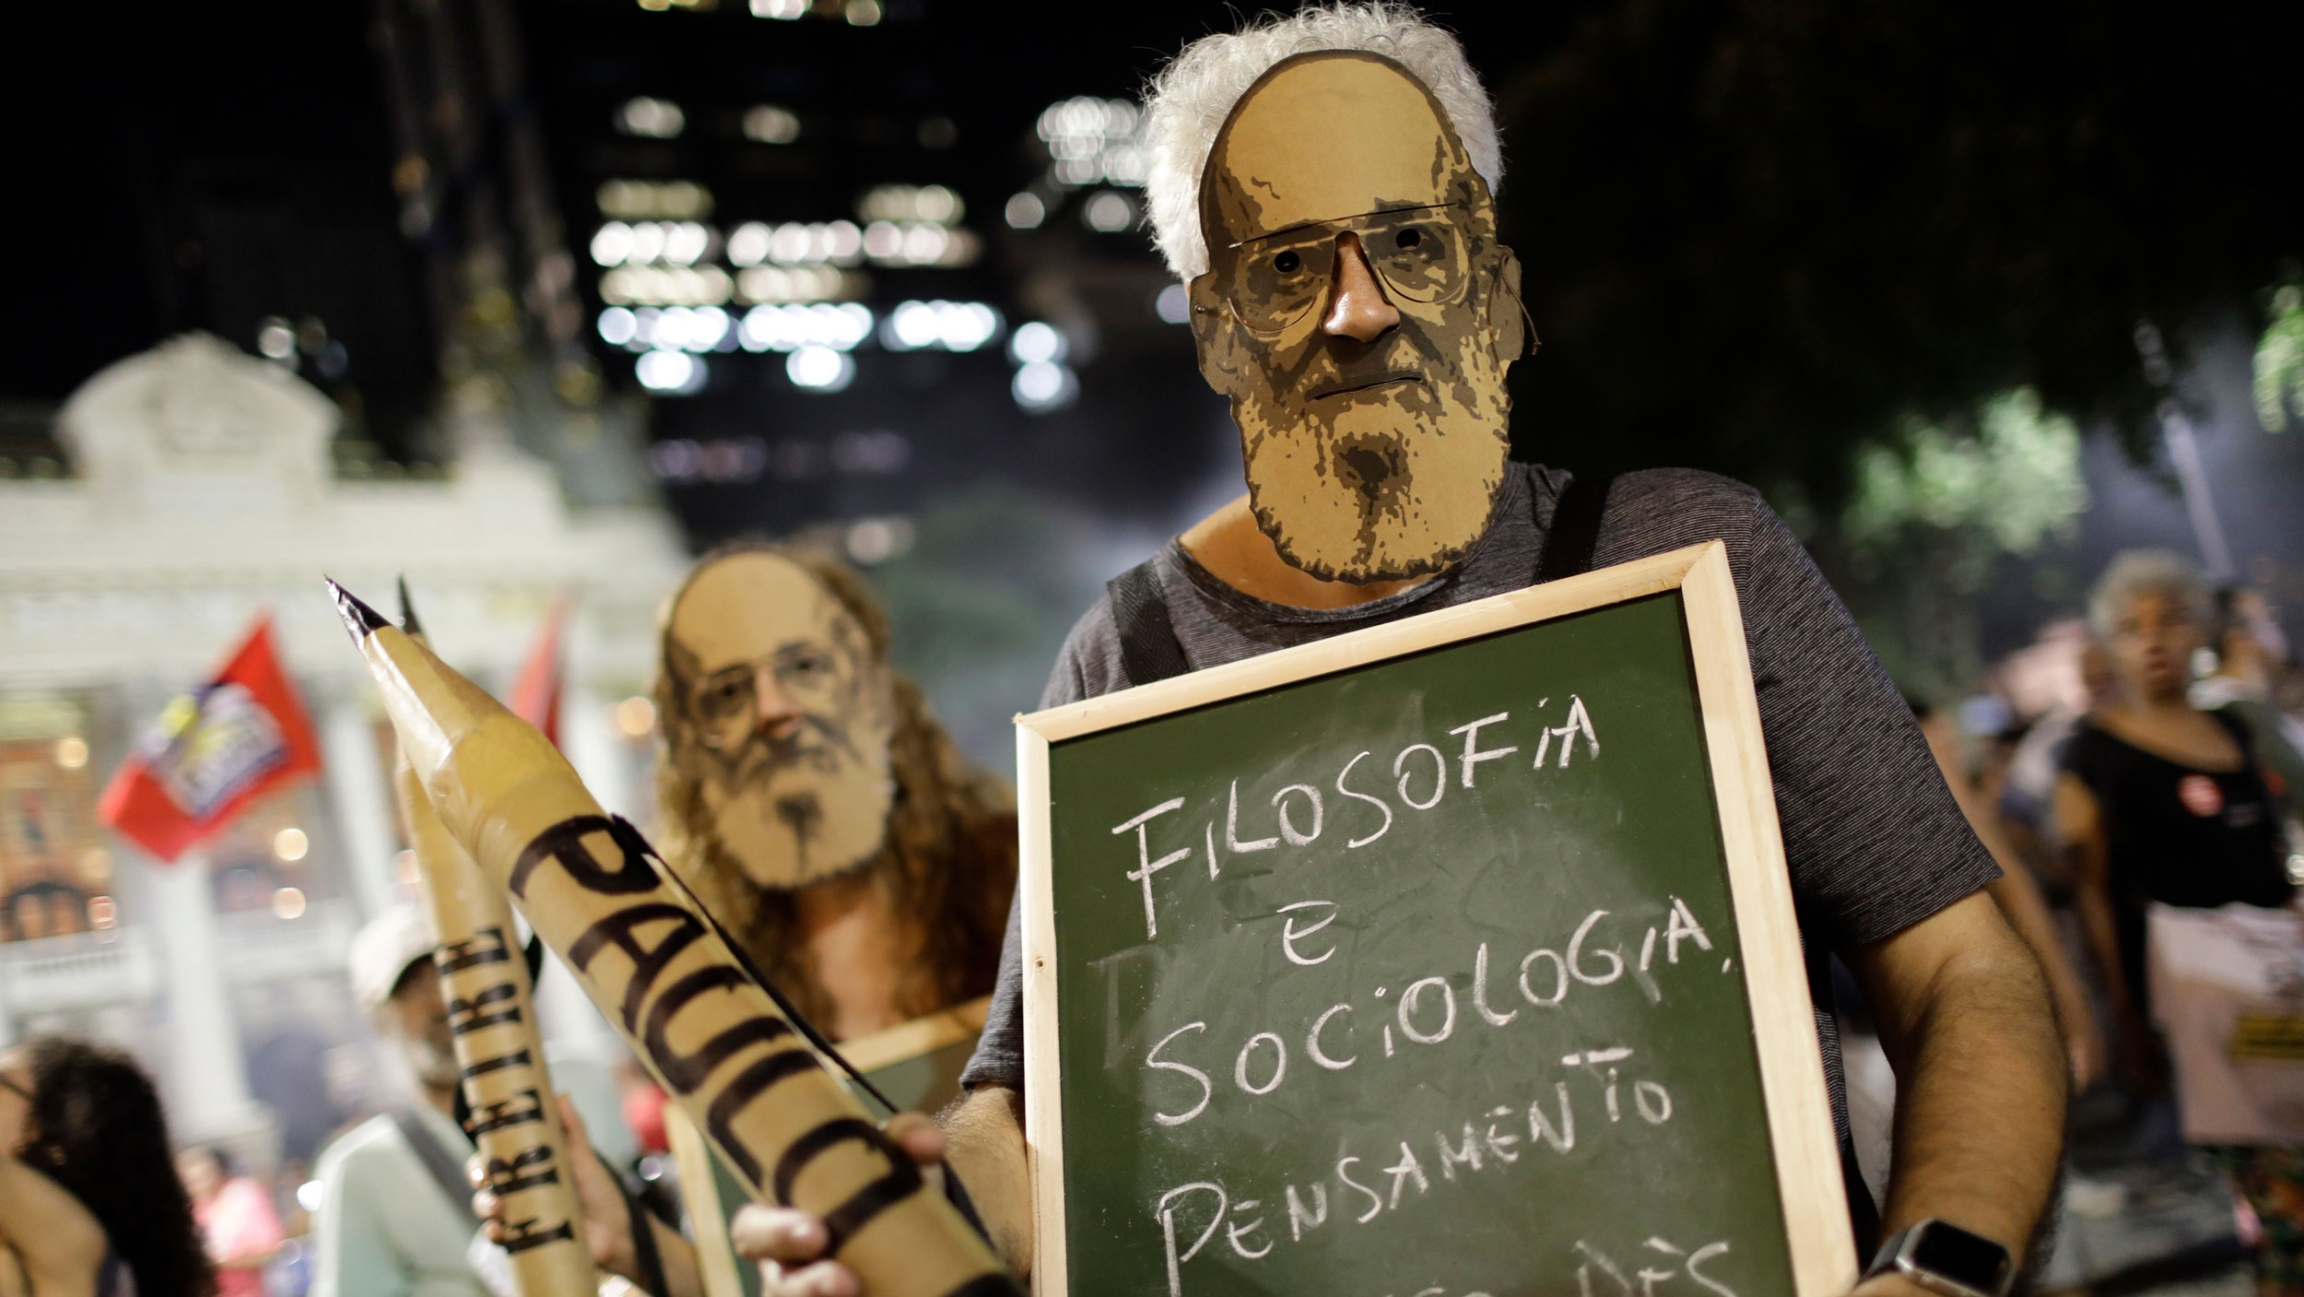 People wear masks of Paulo Freire during a protest against a massive cut in the education budget imposed by the administration of Brazilian President Jair Bolsonaro at Cinelandia square, in Rio de Janeiro, Brazil, Thursday, May 30, 2019.